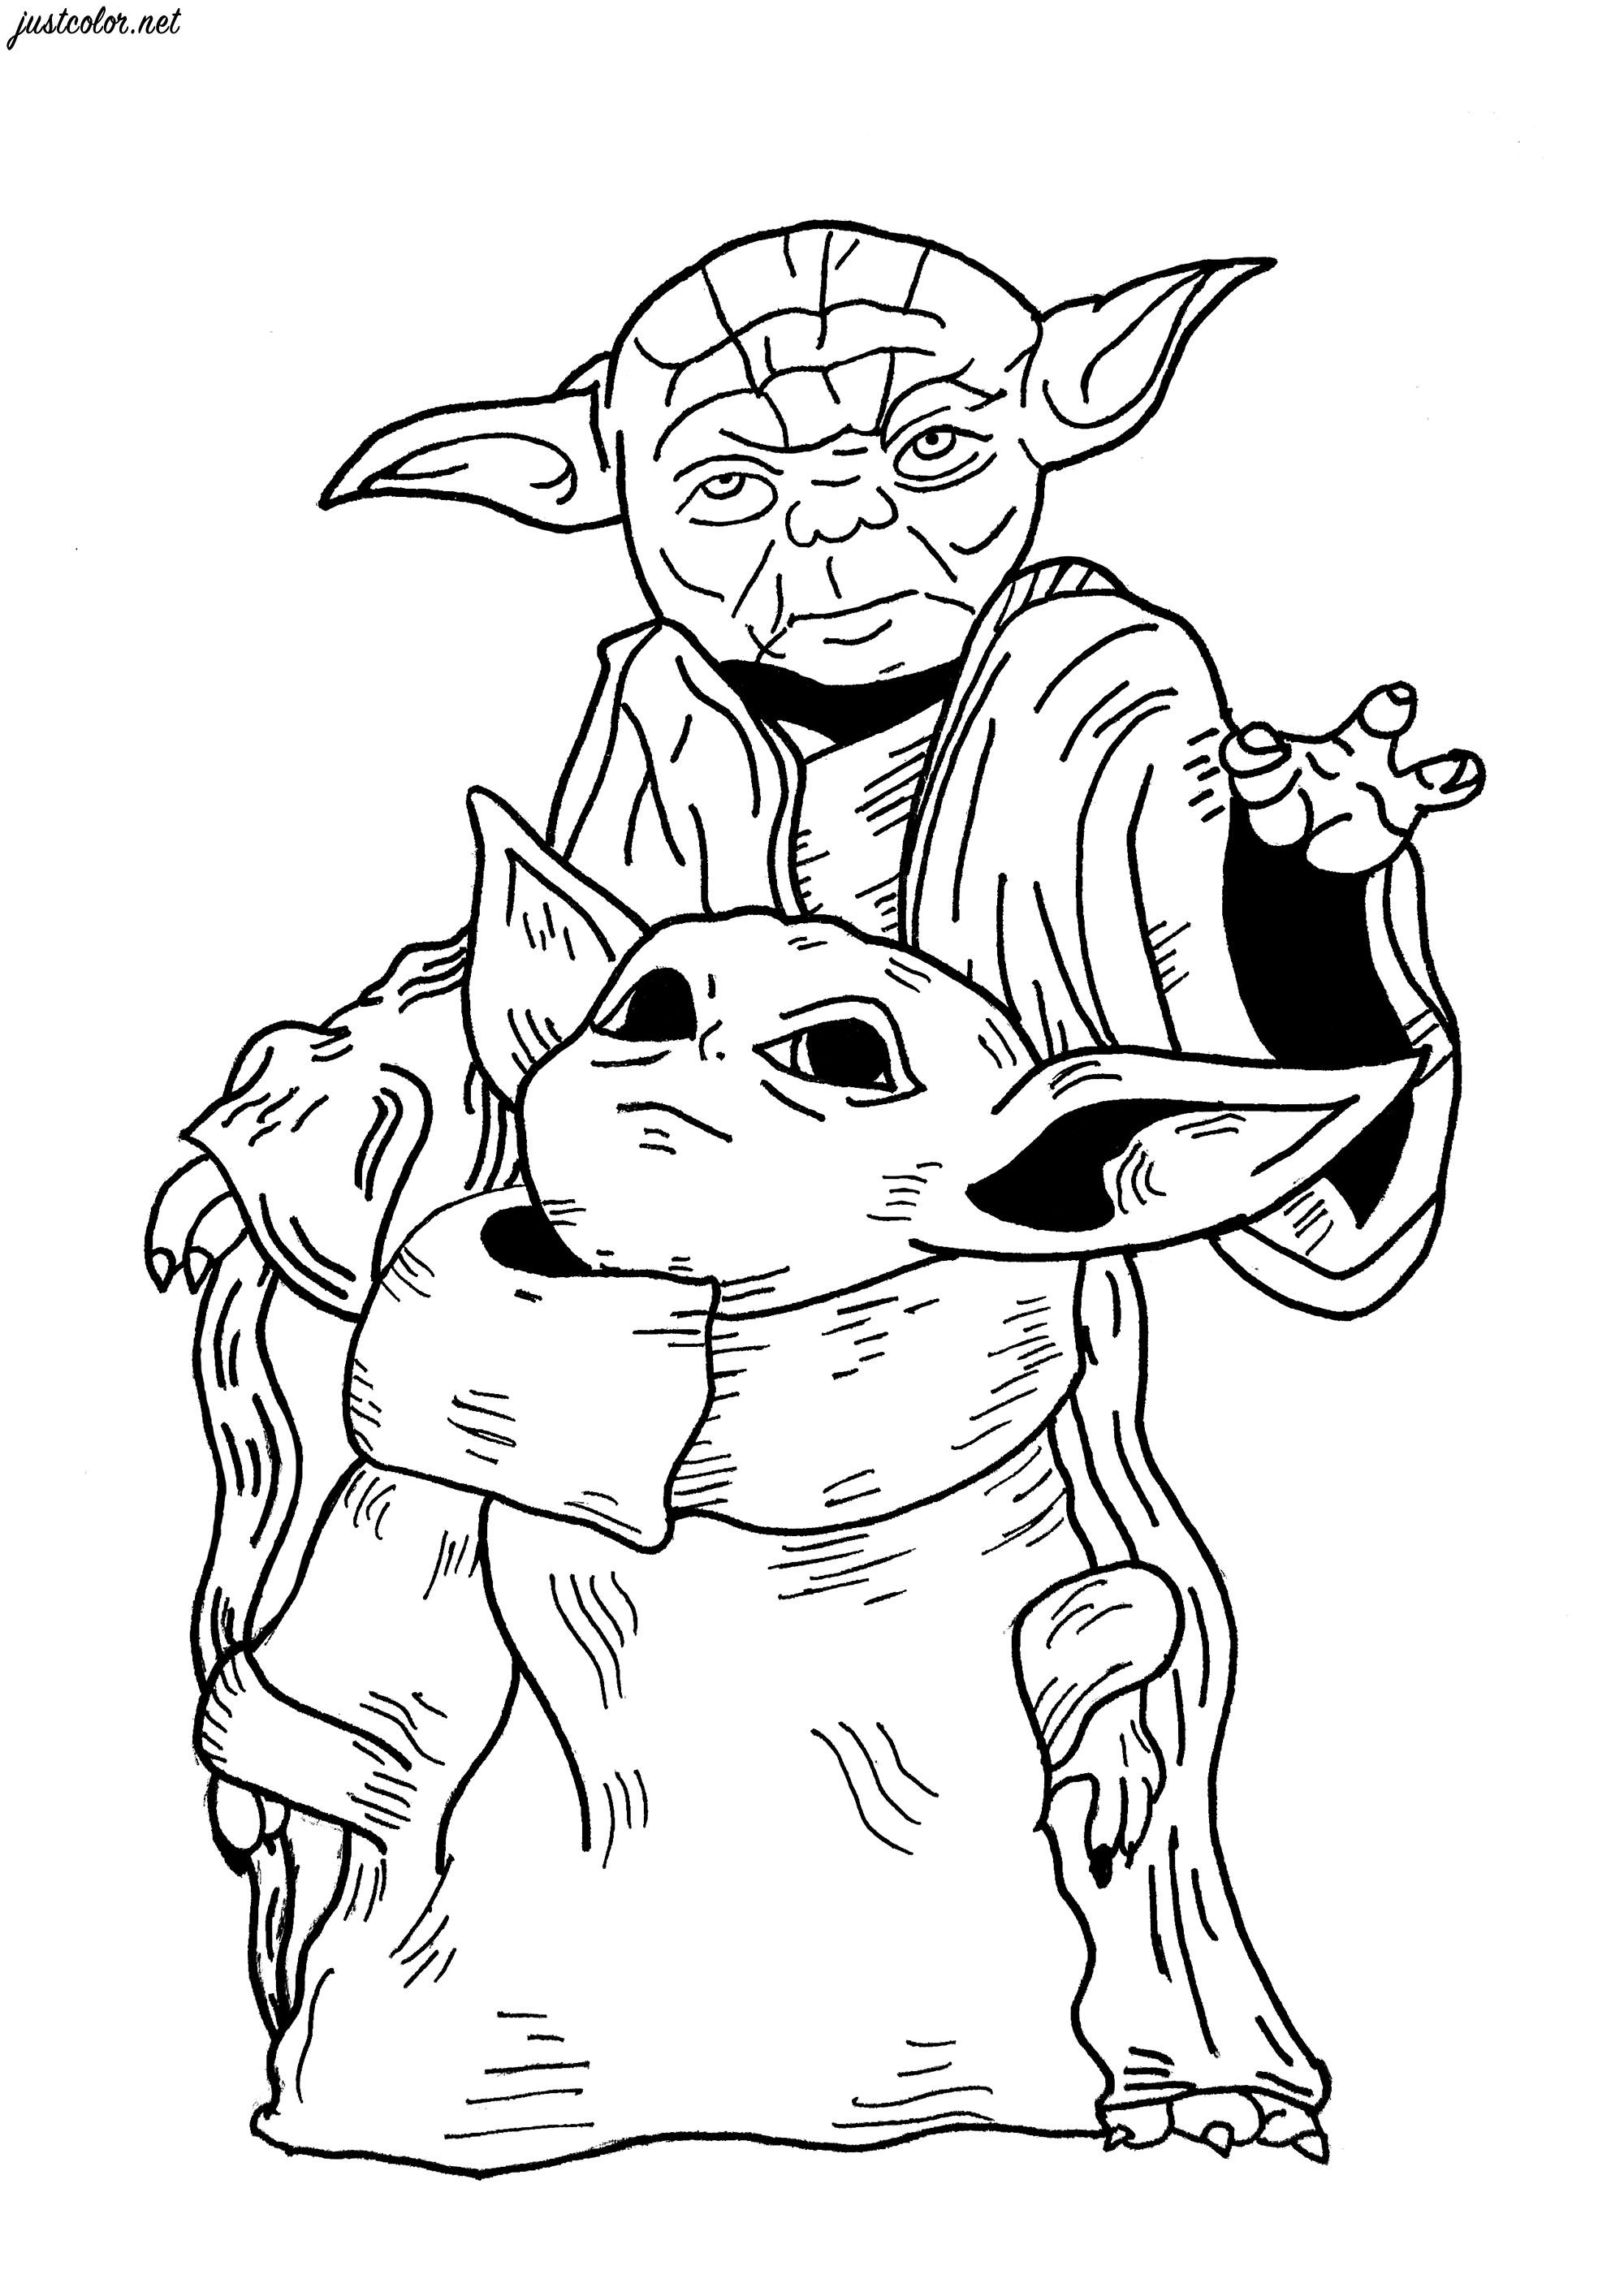 An Original Star Wars Fan Art Coloring Page With Baby Yoda From The Mandalorian Star War Star Wars Coloring Book Star Wars Coloring Sheet Star Wars Drawings